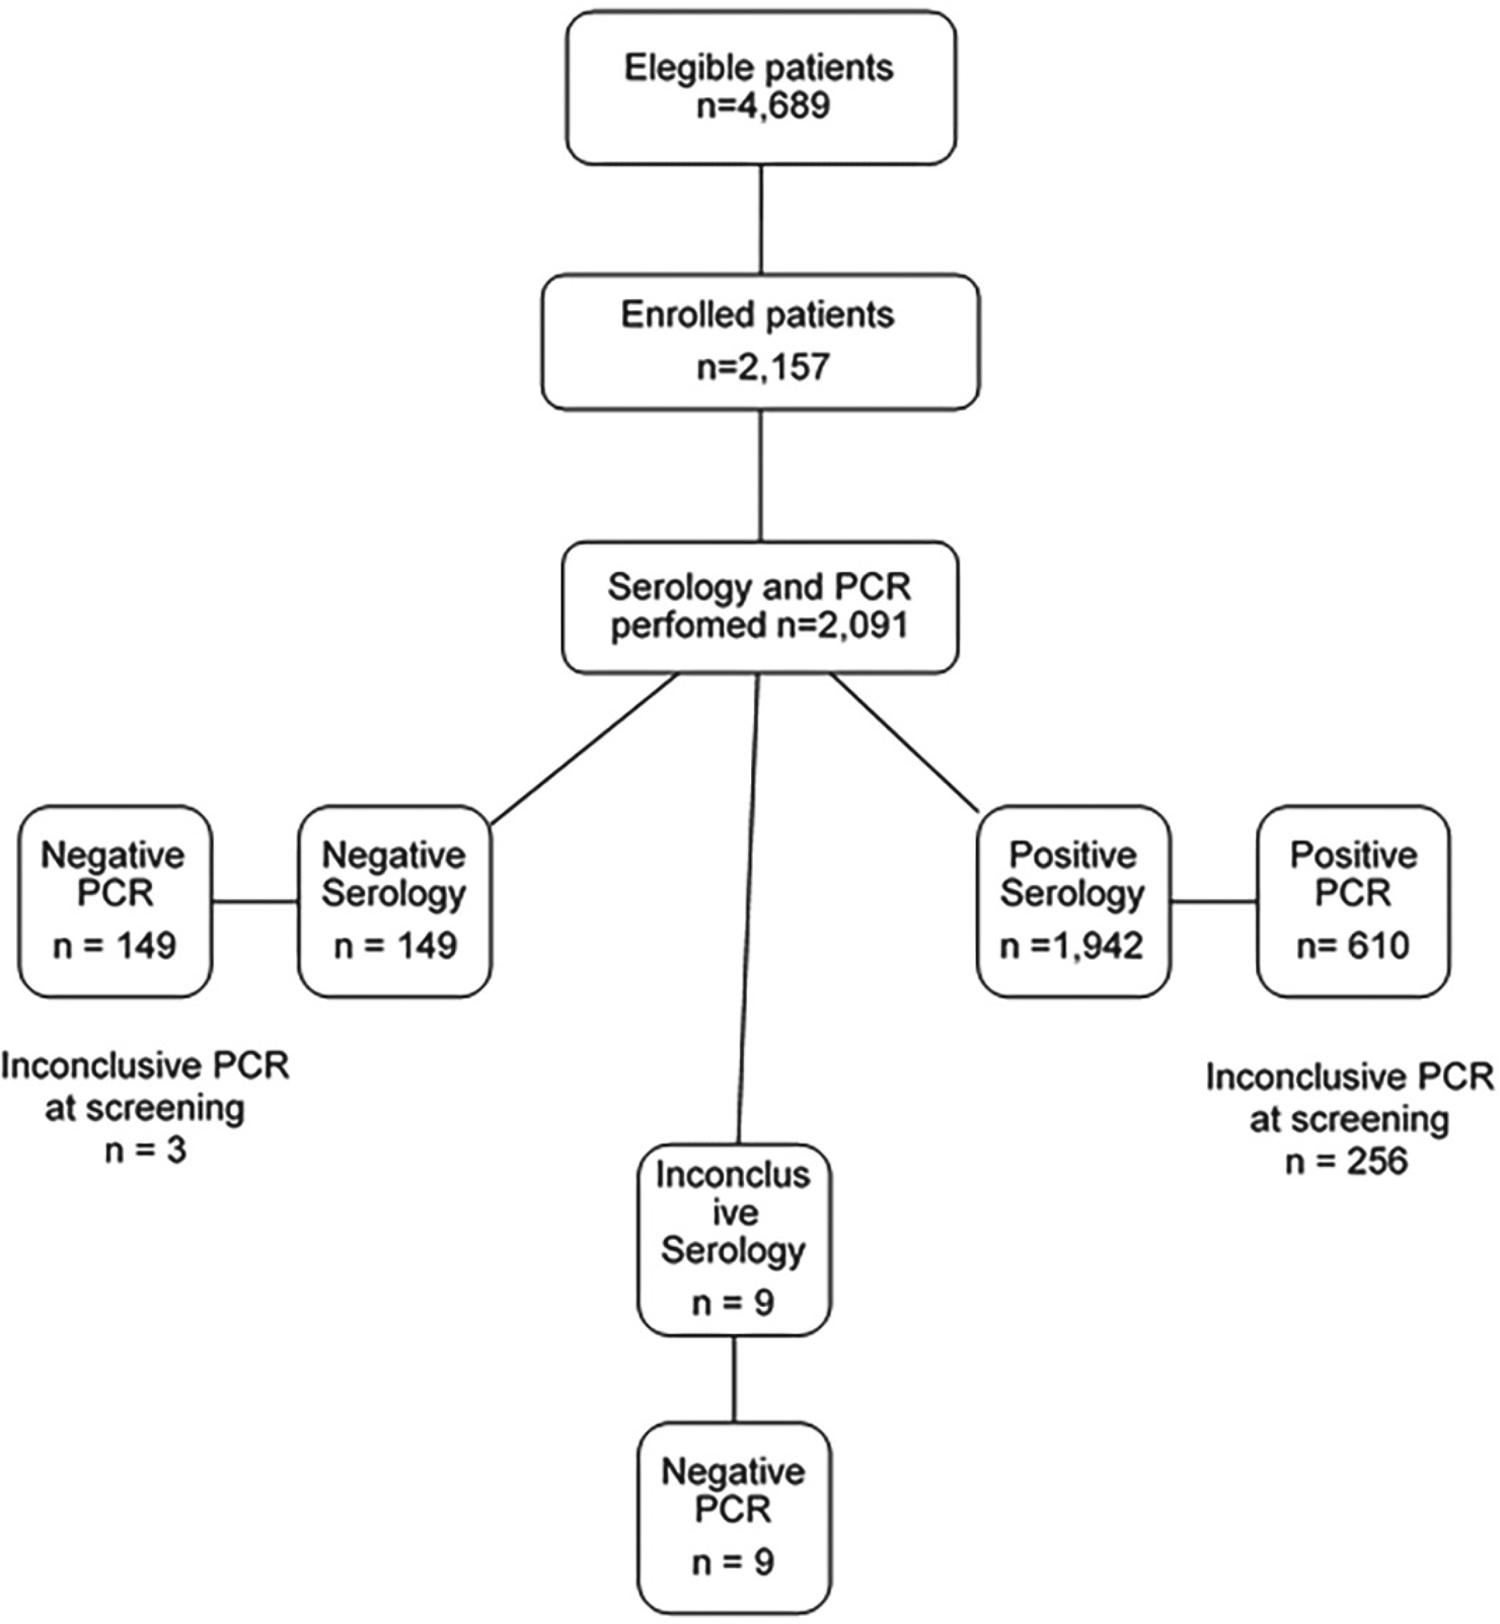 Serological and PCR results of studied patients.